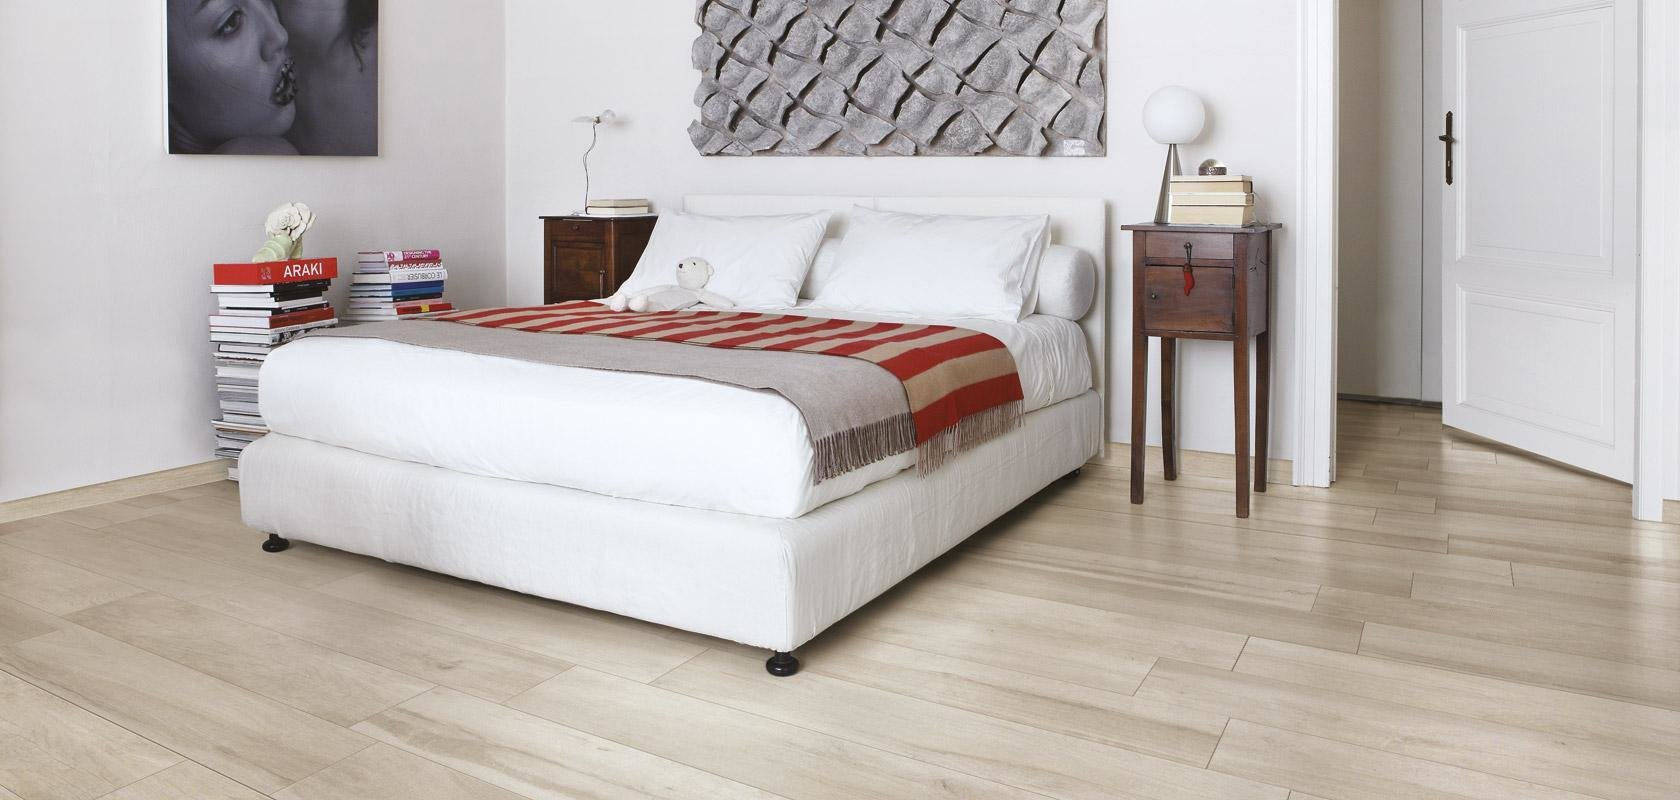 Best Floors And Wall Tiles For Bedroom Italian Design Supergres With Pictures